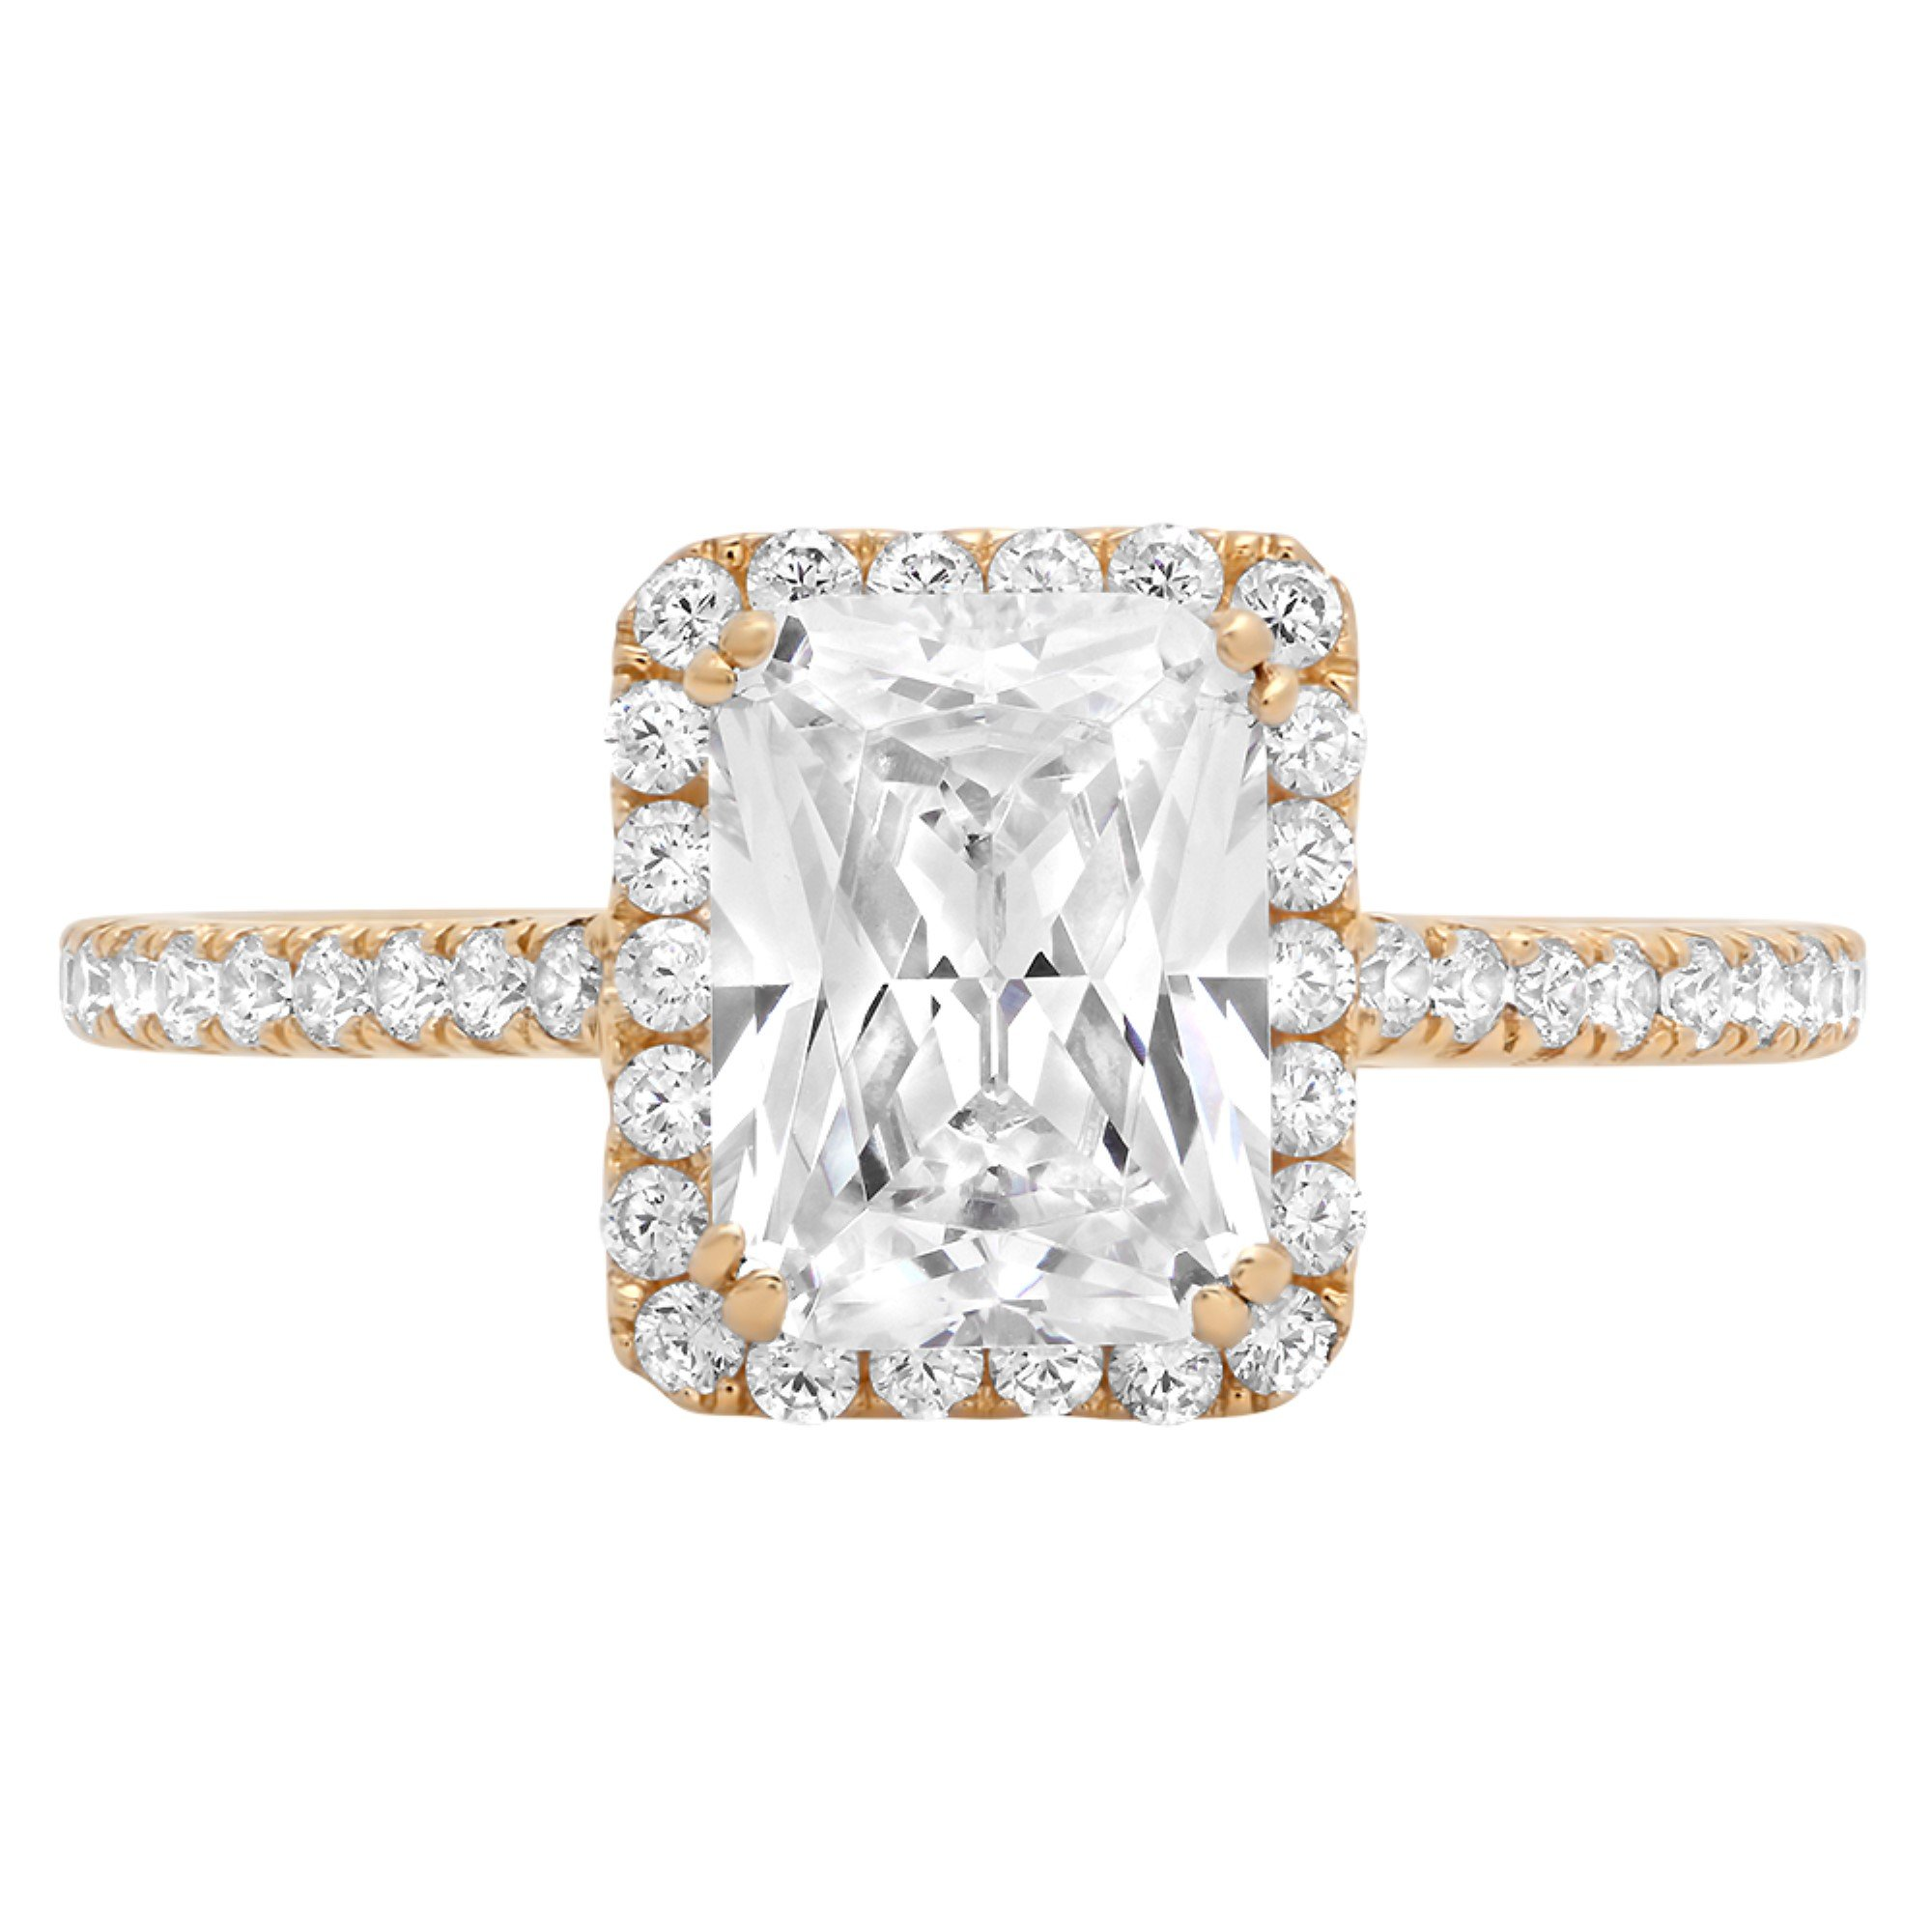 2.08ct Brilliant Emerald Halo Simulated Diamond Statement Solitaire Ring 14k Yellow Gold, 8.75